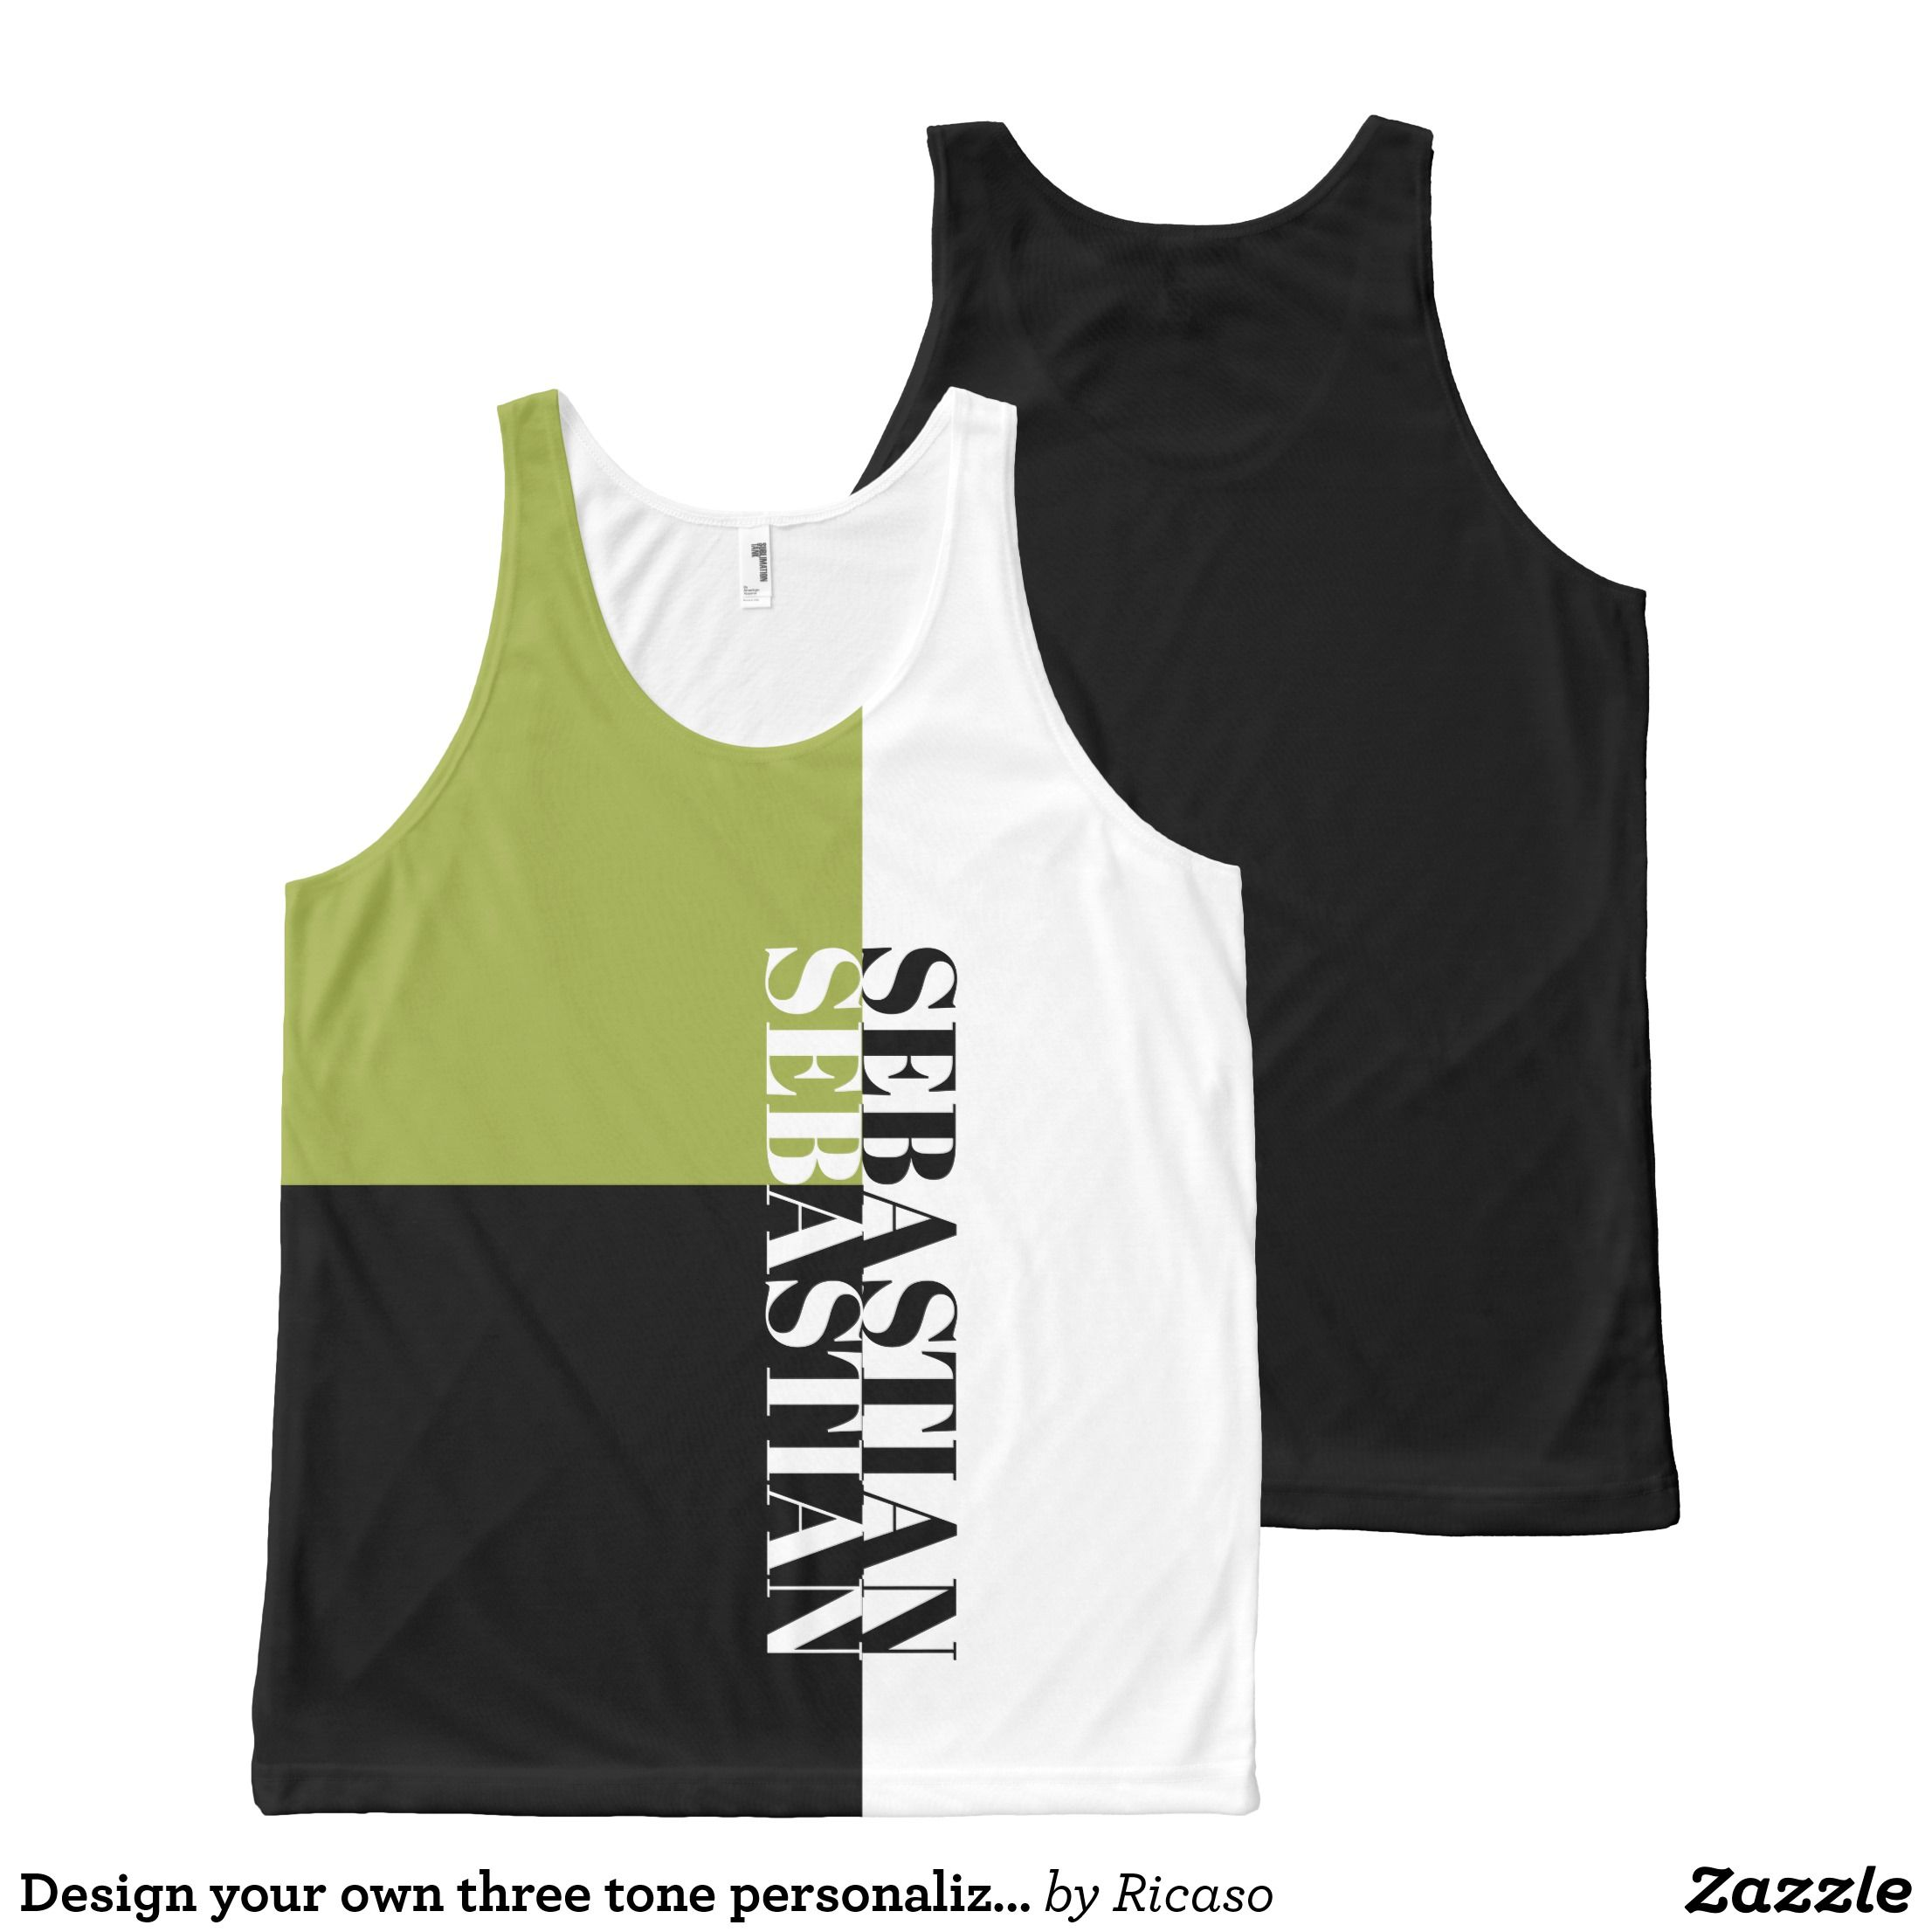 Design your own three tone personalized text All-Over-Print tank top